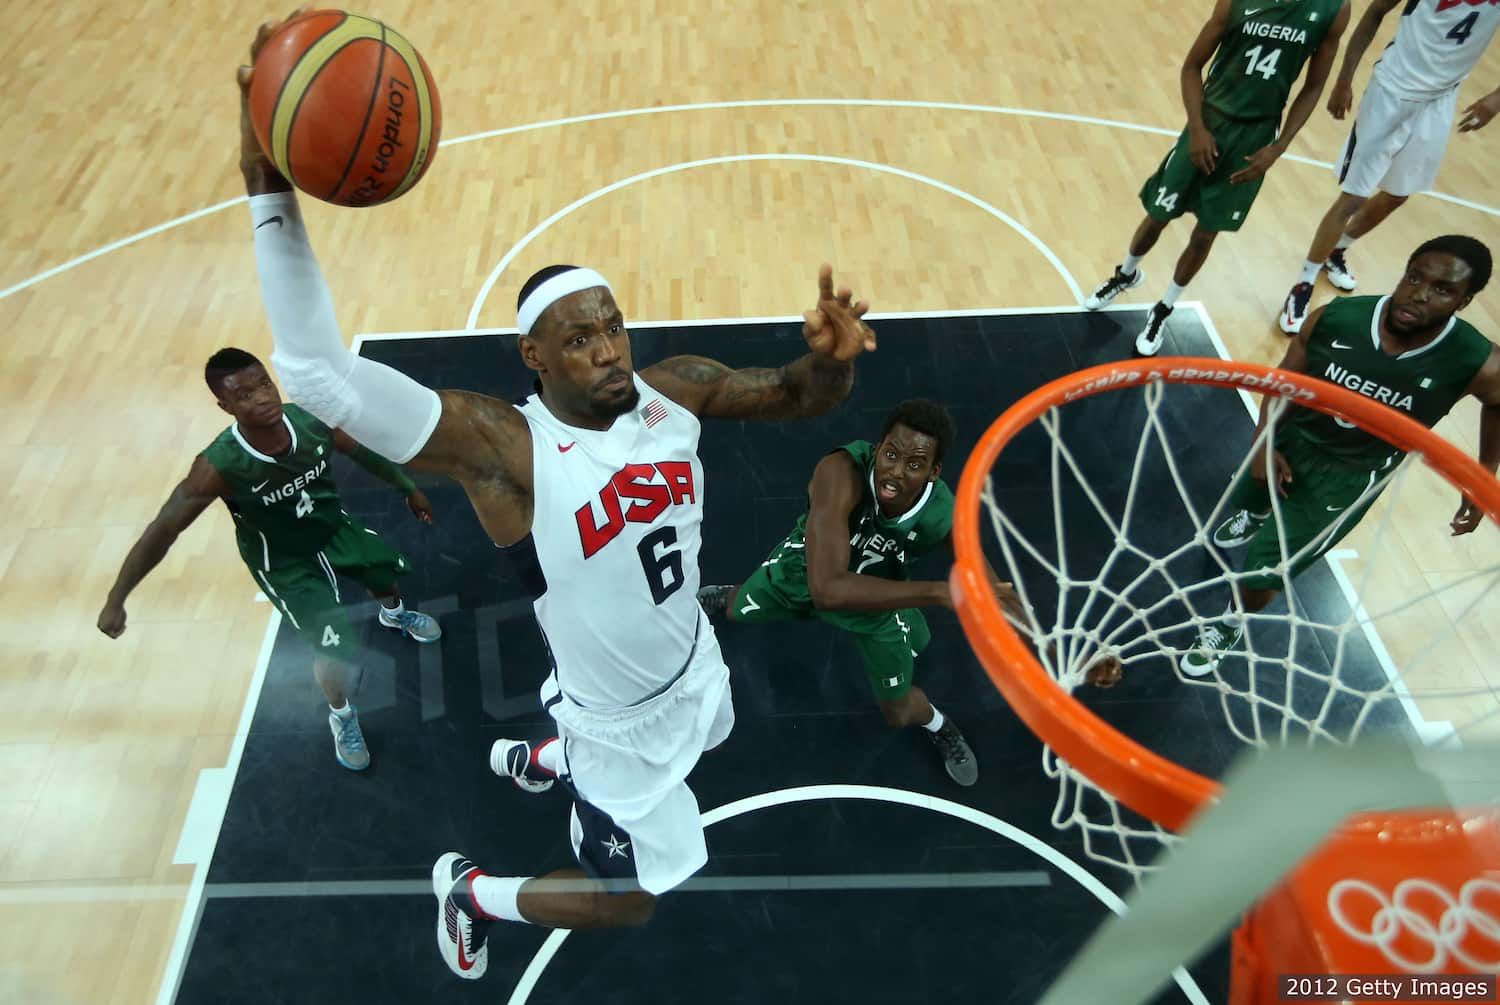 LeBron James competes in the Olympics